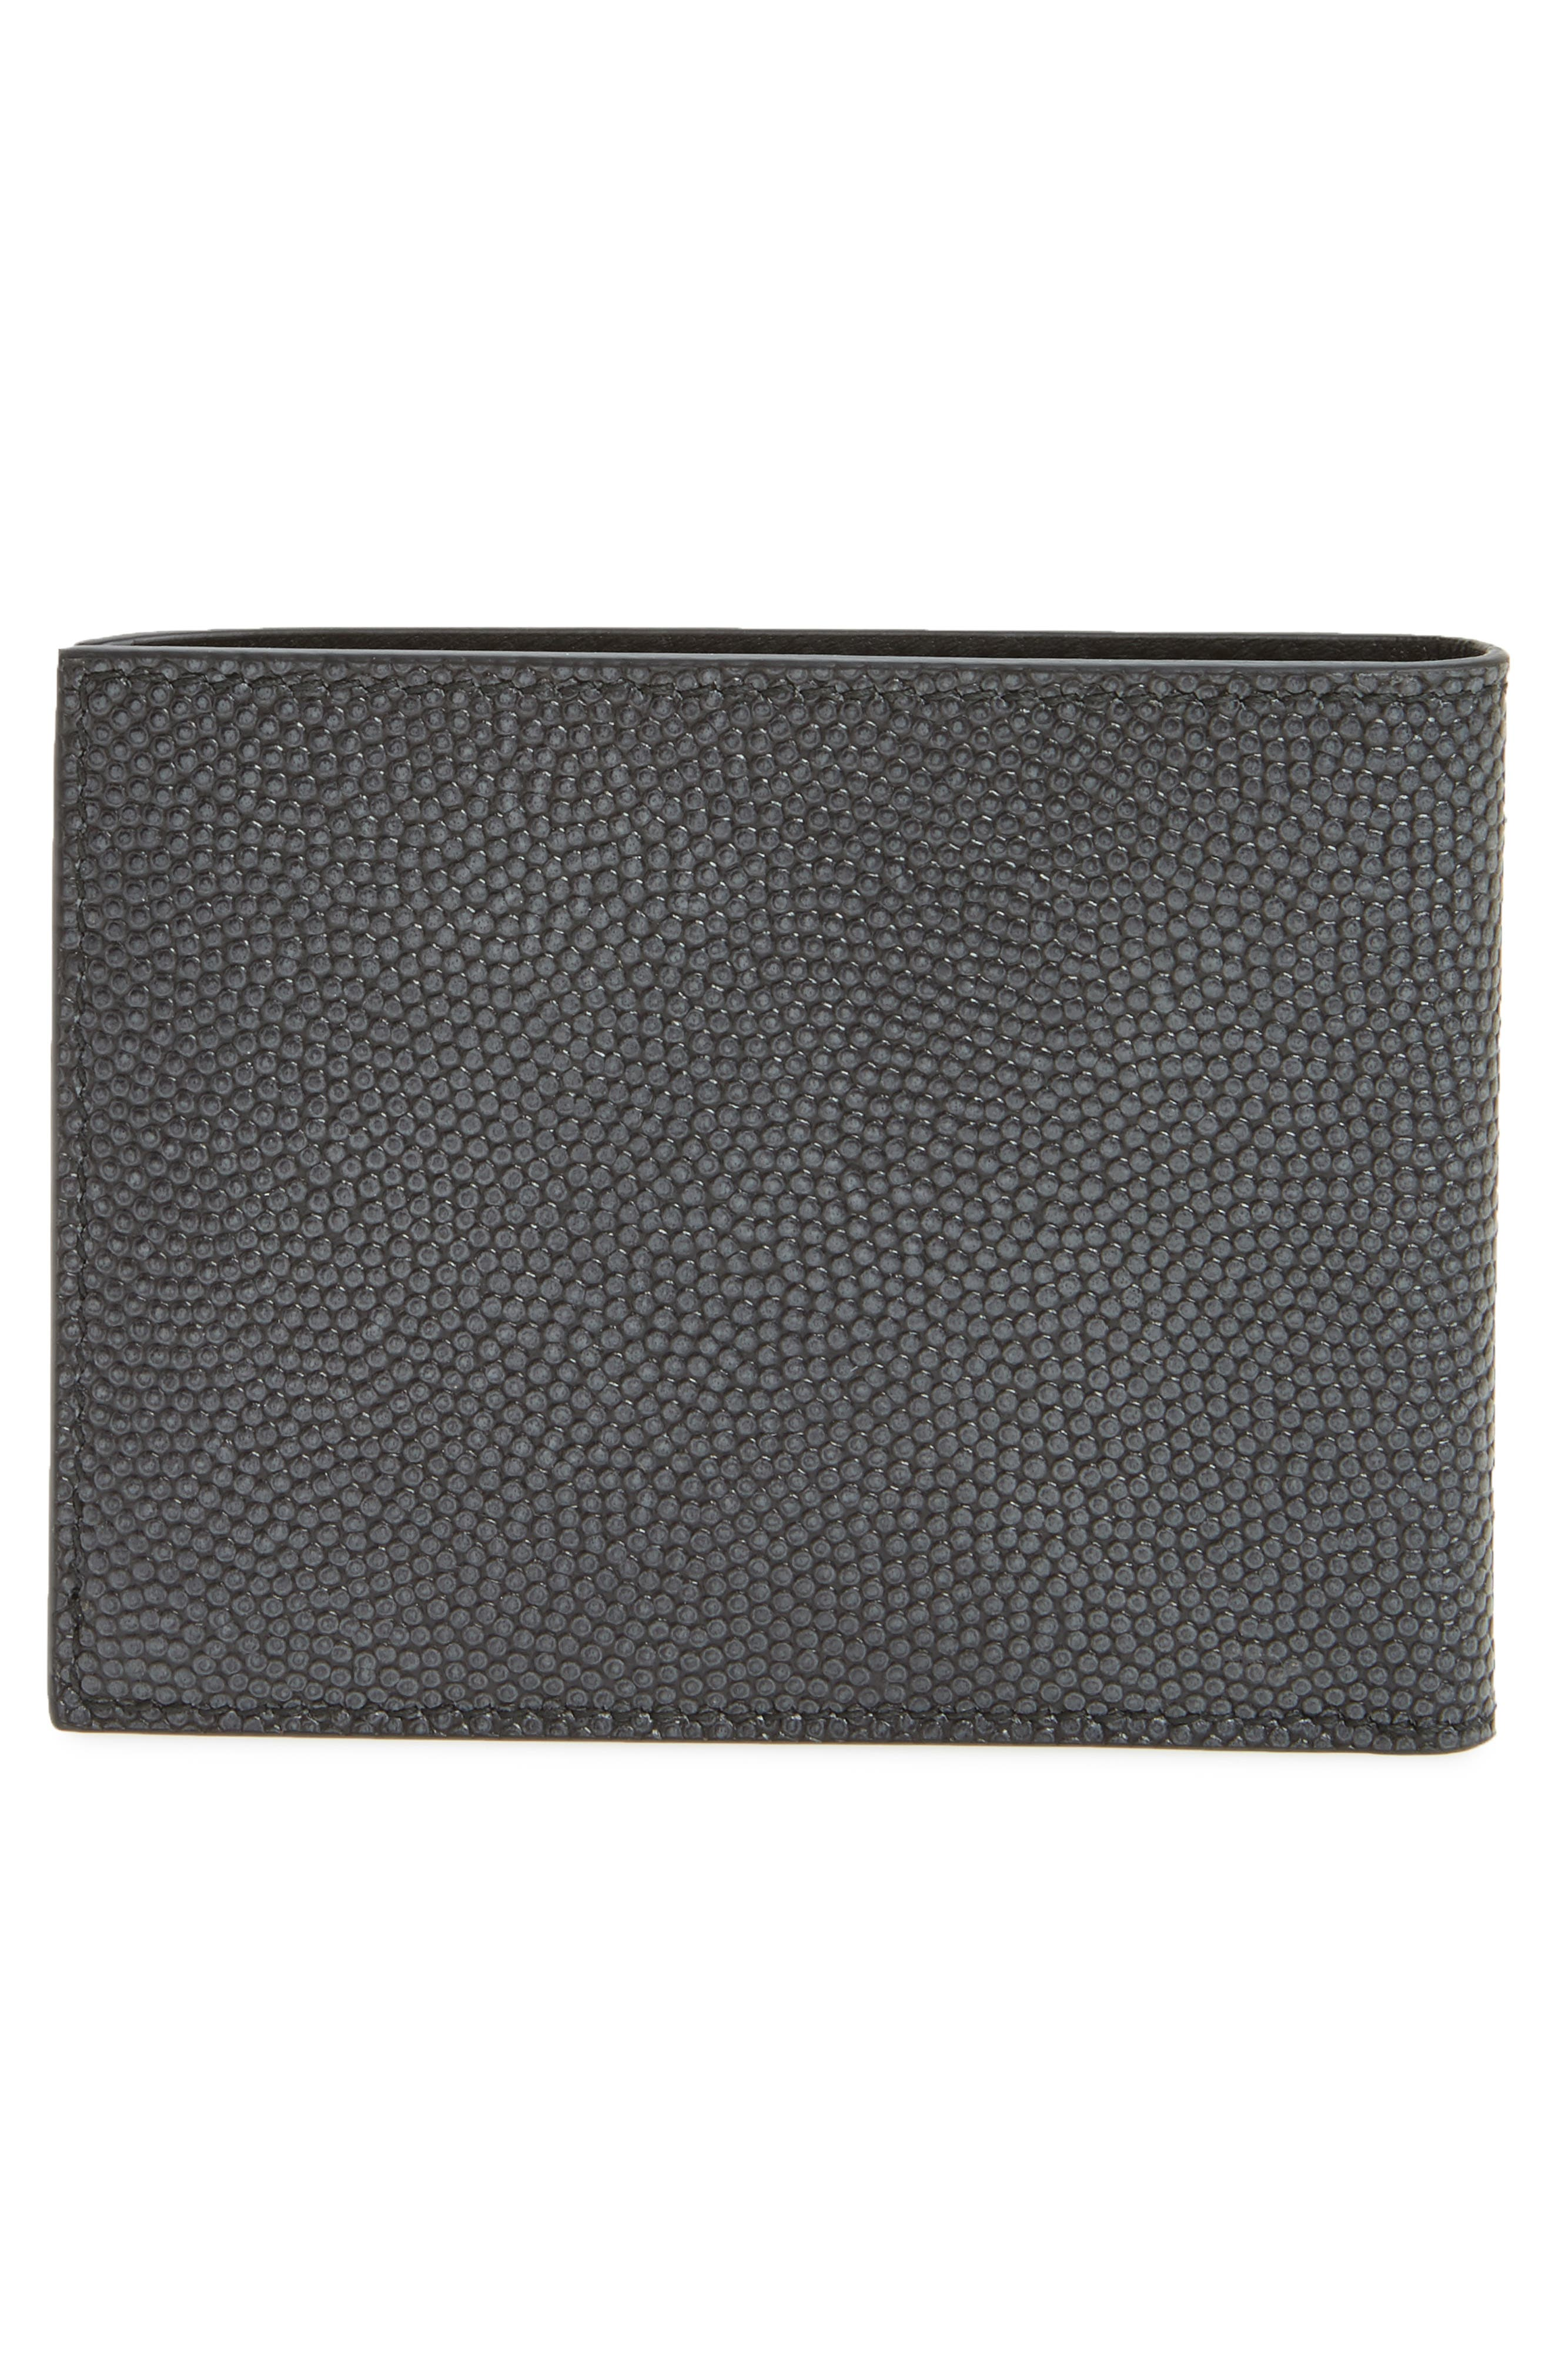 Alternate Image 3  - Salvatore Ferragamo Leather Bifold Leather